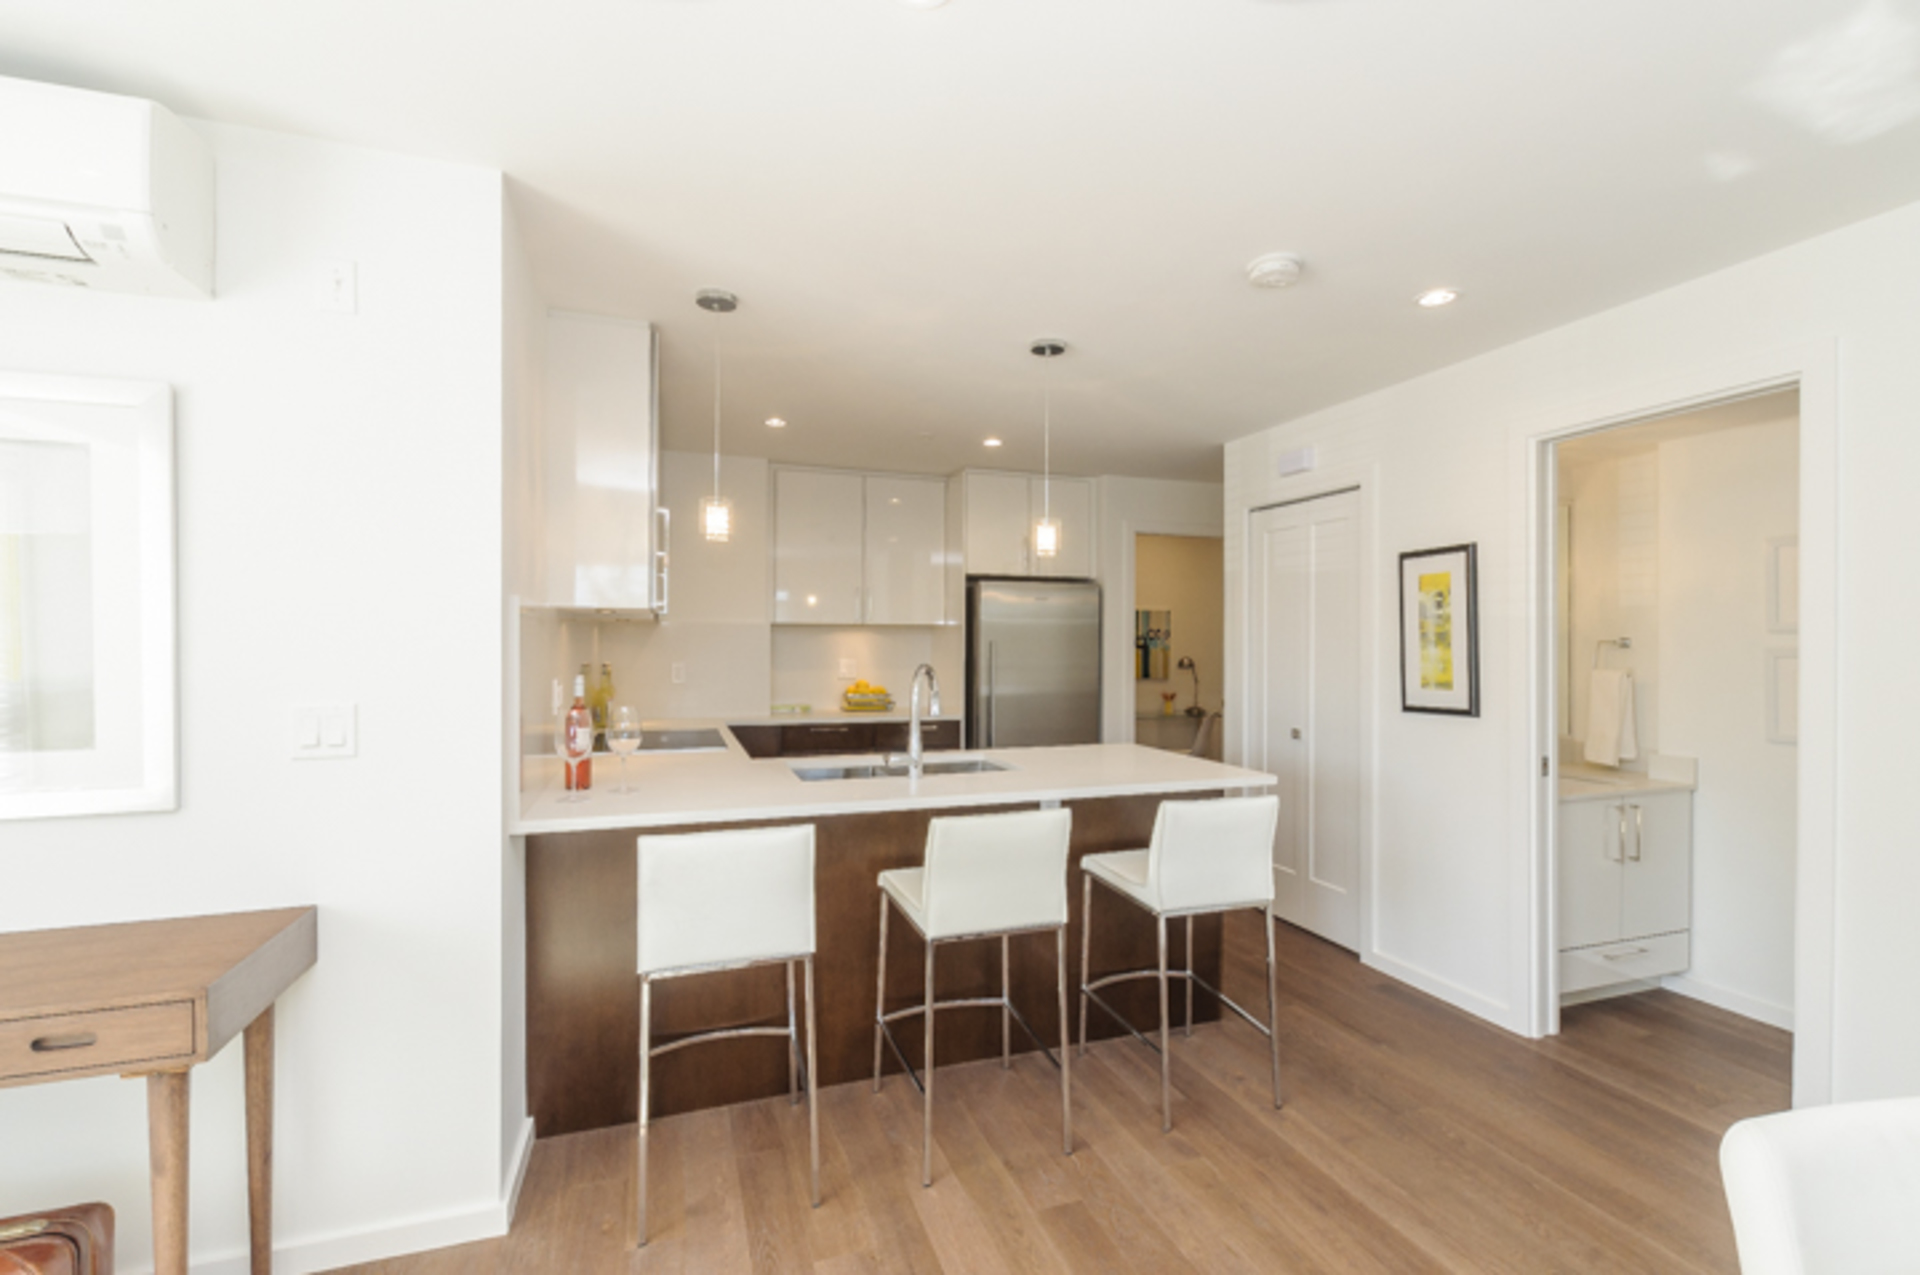 987-w-70th-ave-actual-web-43 at 987 West 70th Avenue, Marpole, Vancouver West